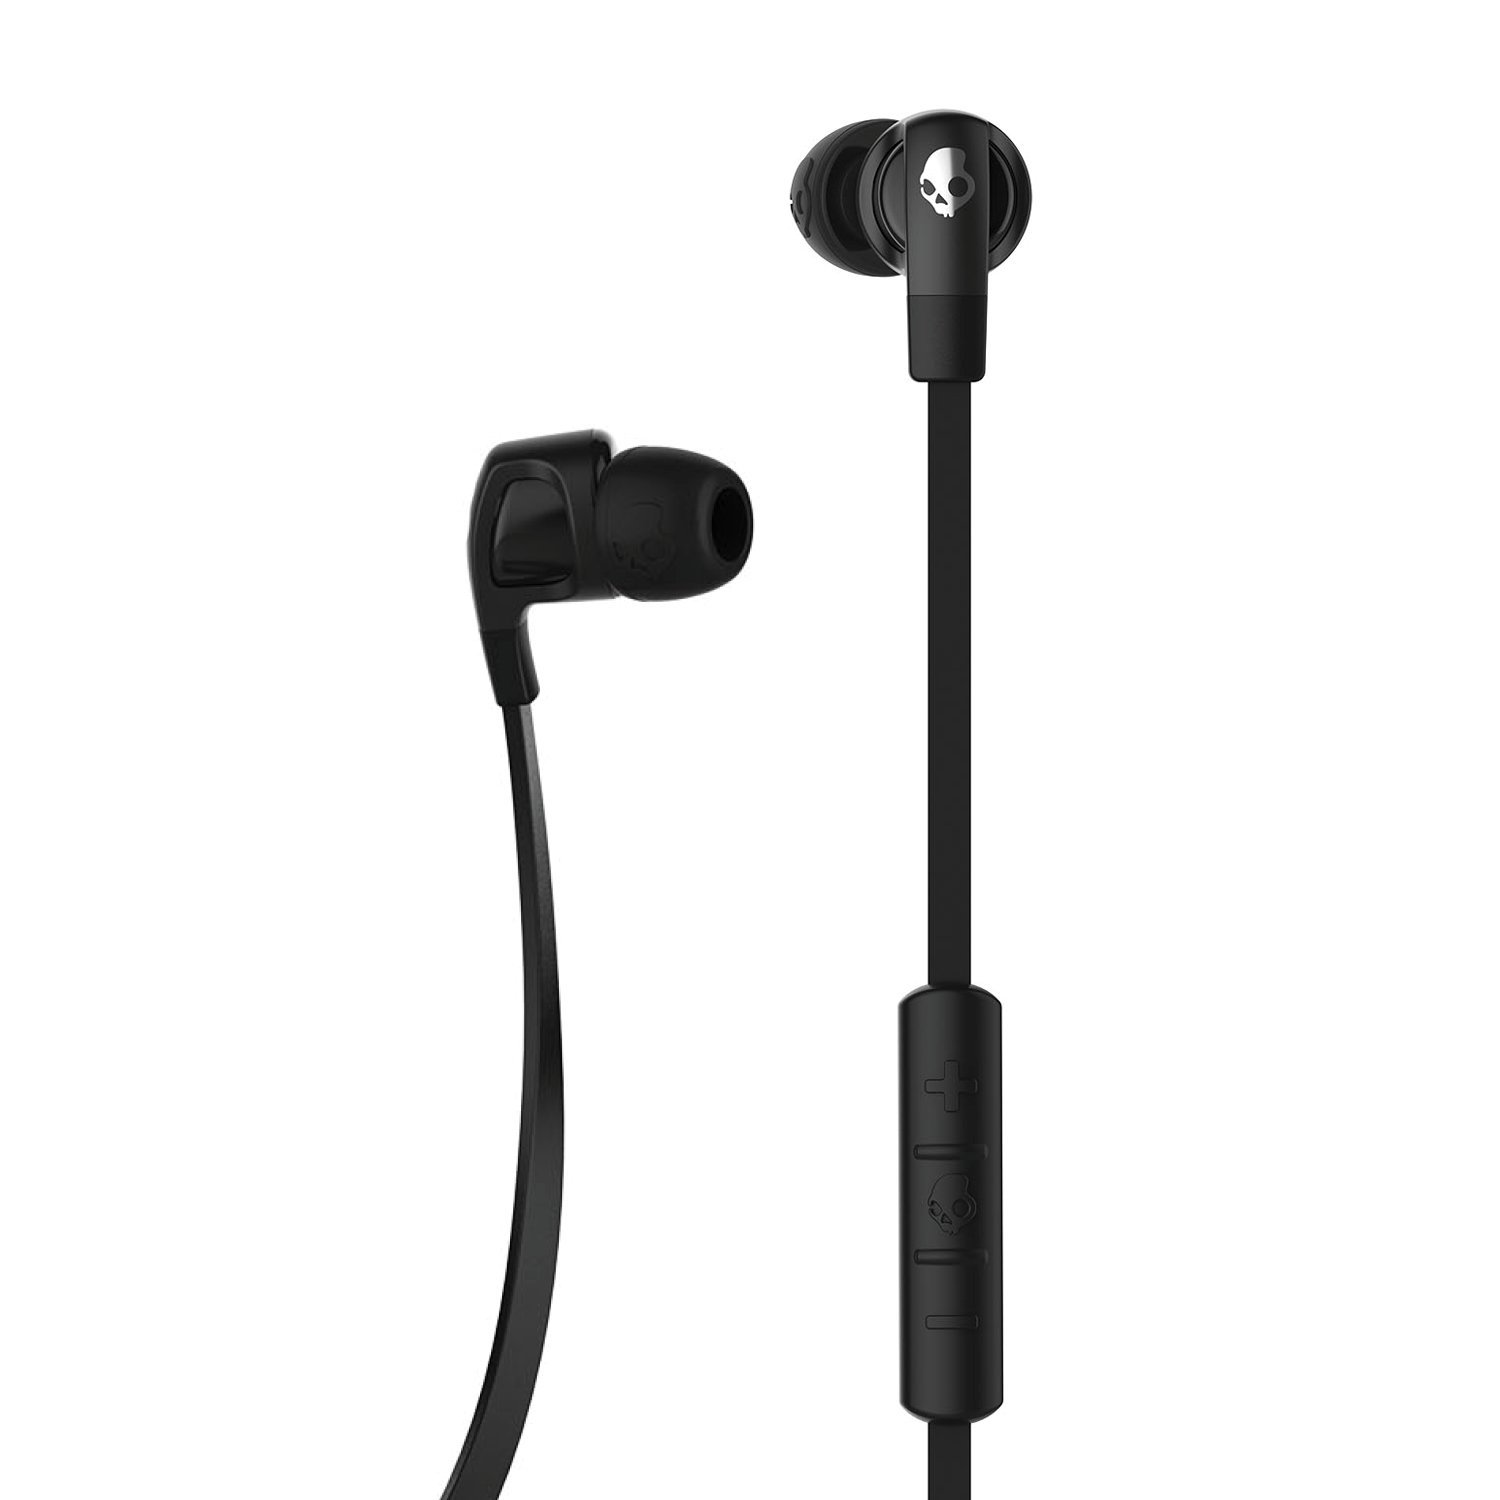 Skullcandy-Smokin-039-Buds-2-in-Ear-Bluetooth-Wireless-Earbuds-with-Microphone-New thumbnail 10